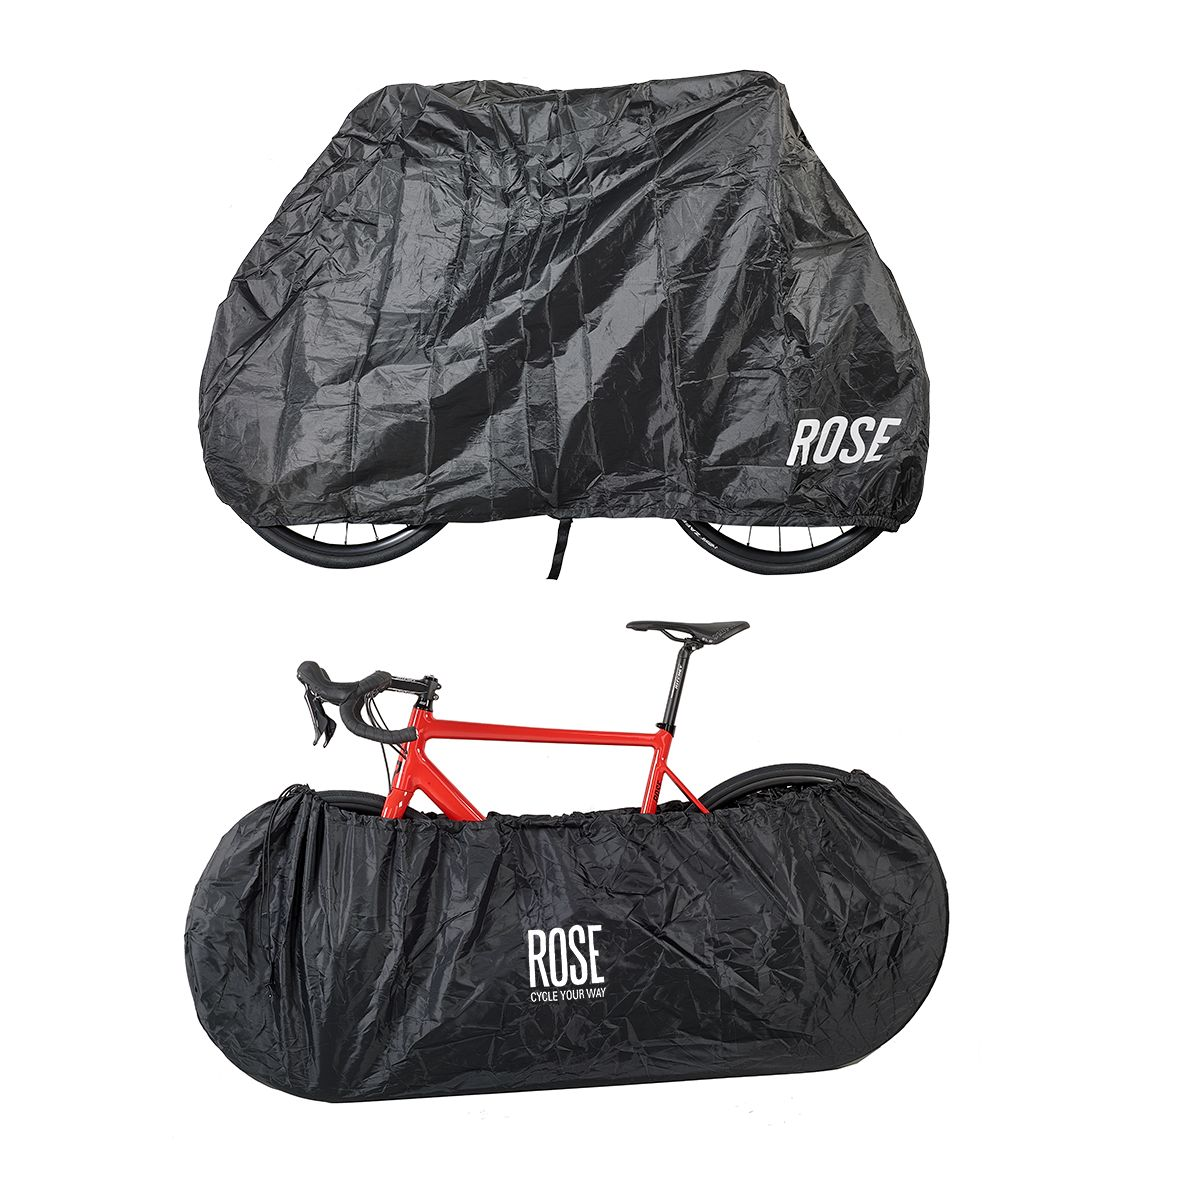 ROSE Cycle your way protective bike cover set - all-round - | Bike garage